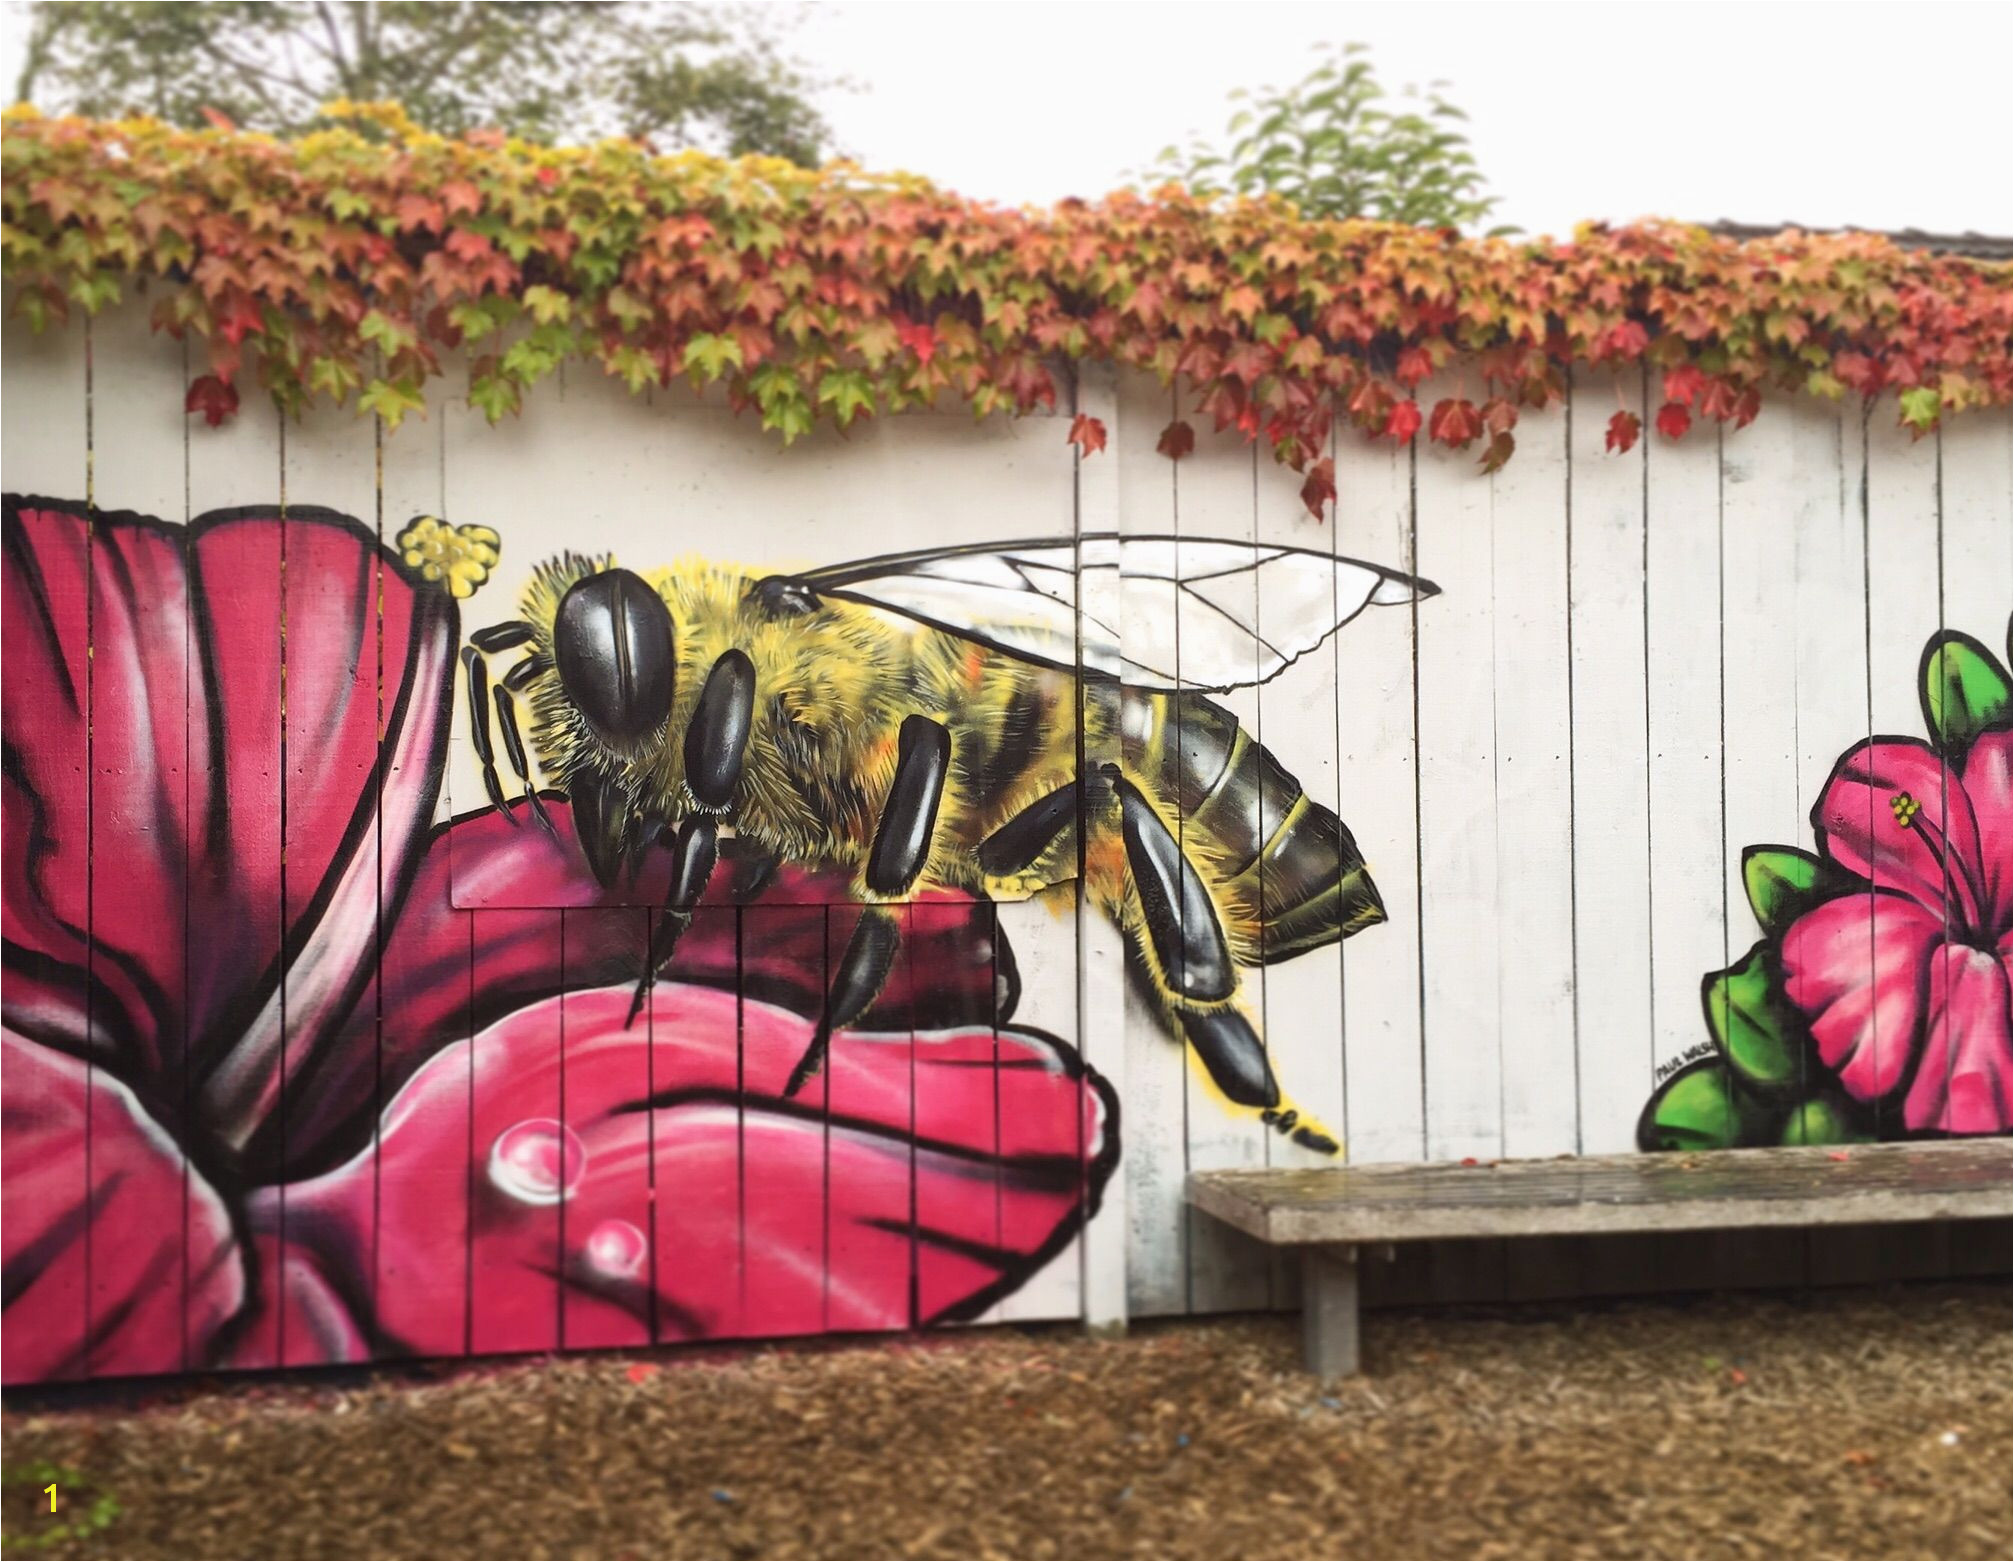 I spent my Sunday morning painting a bee on the fence of a local munity centre